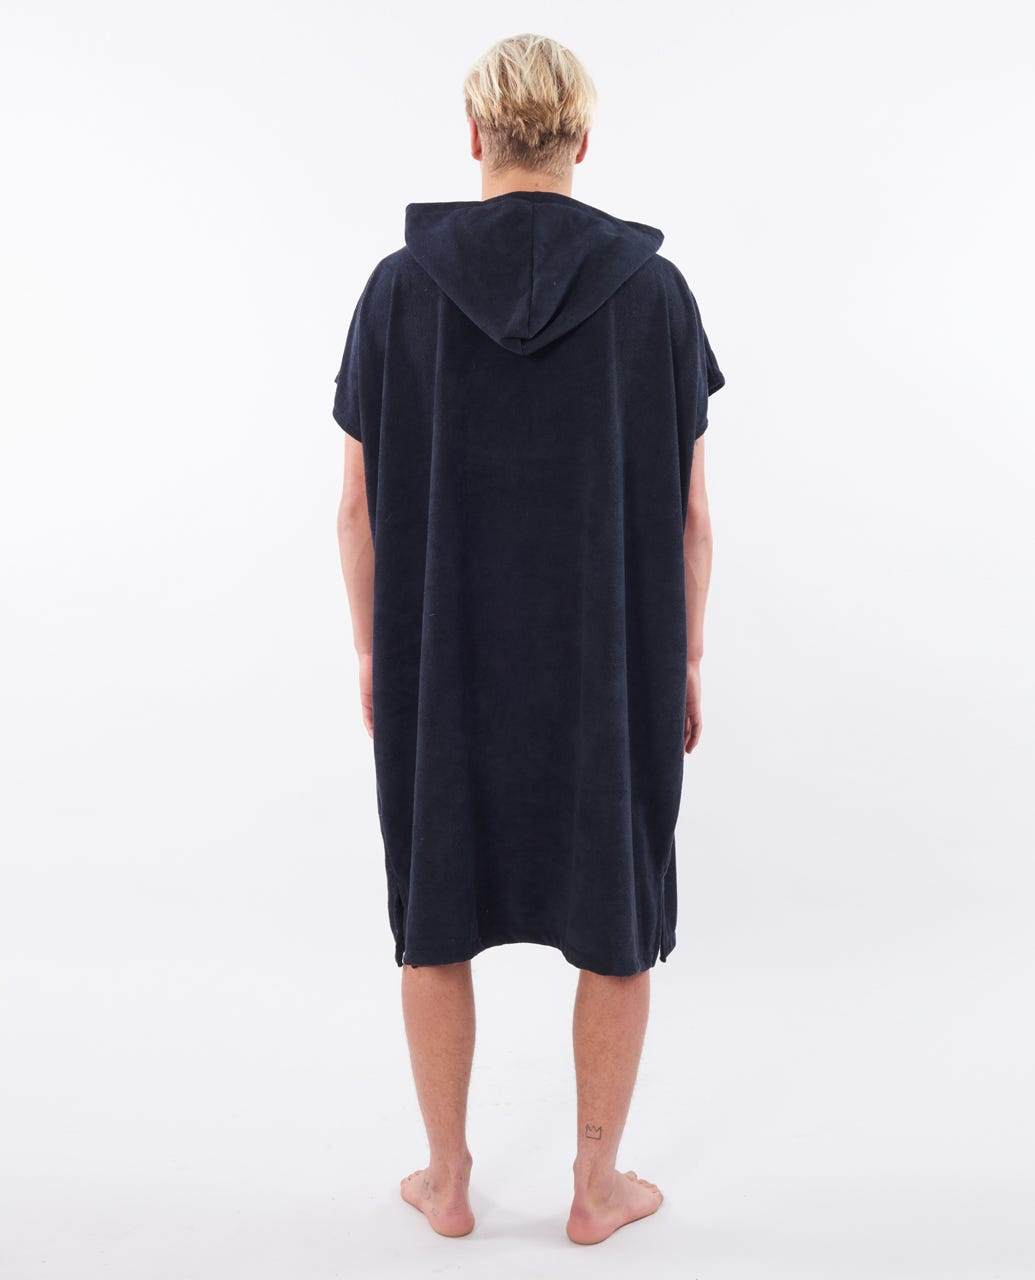 Rip Curl Wet as Hooded Towel Black-Surf Poncho